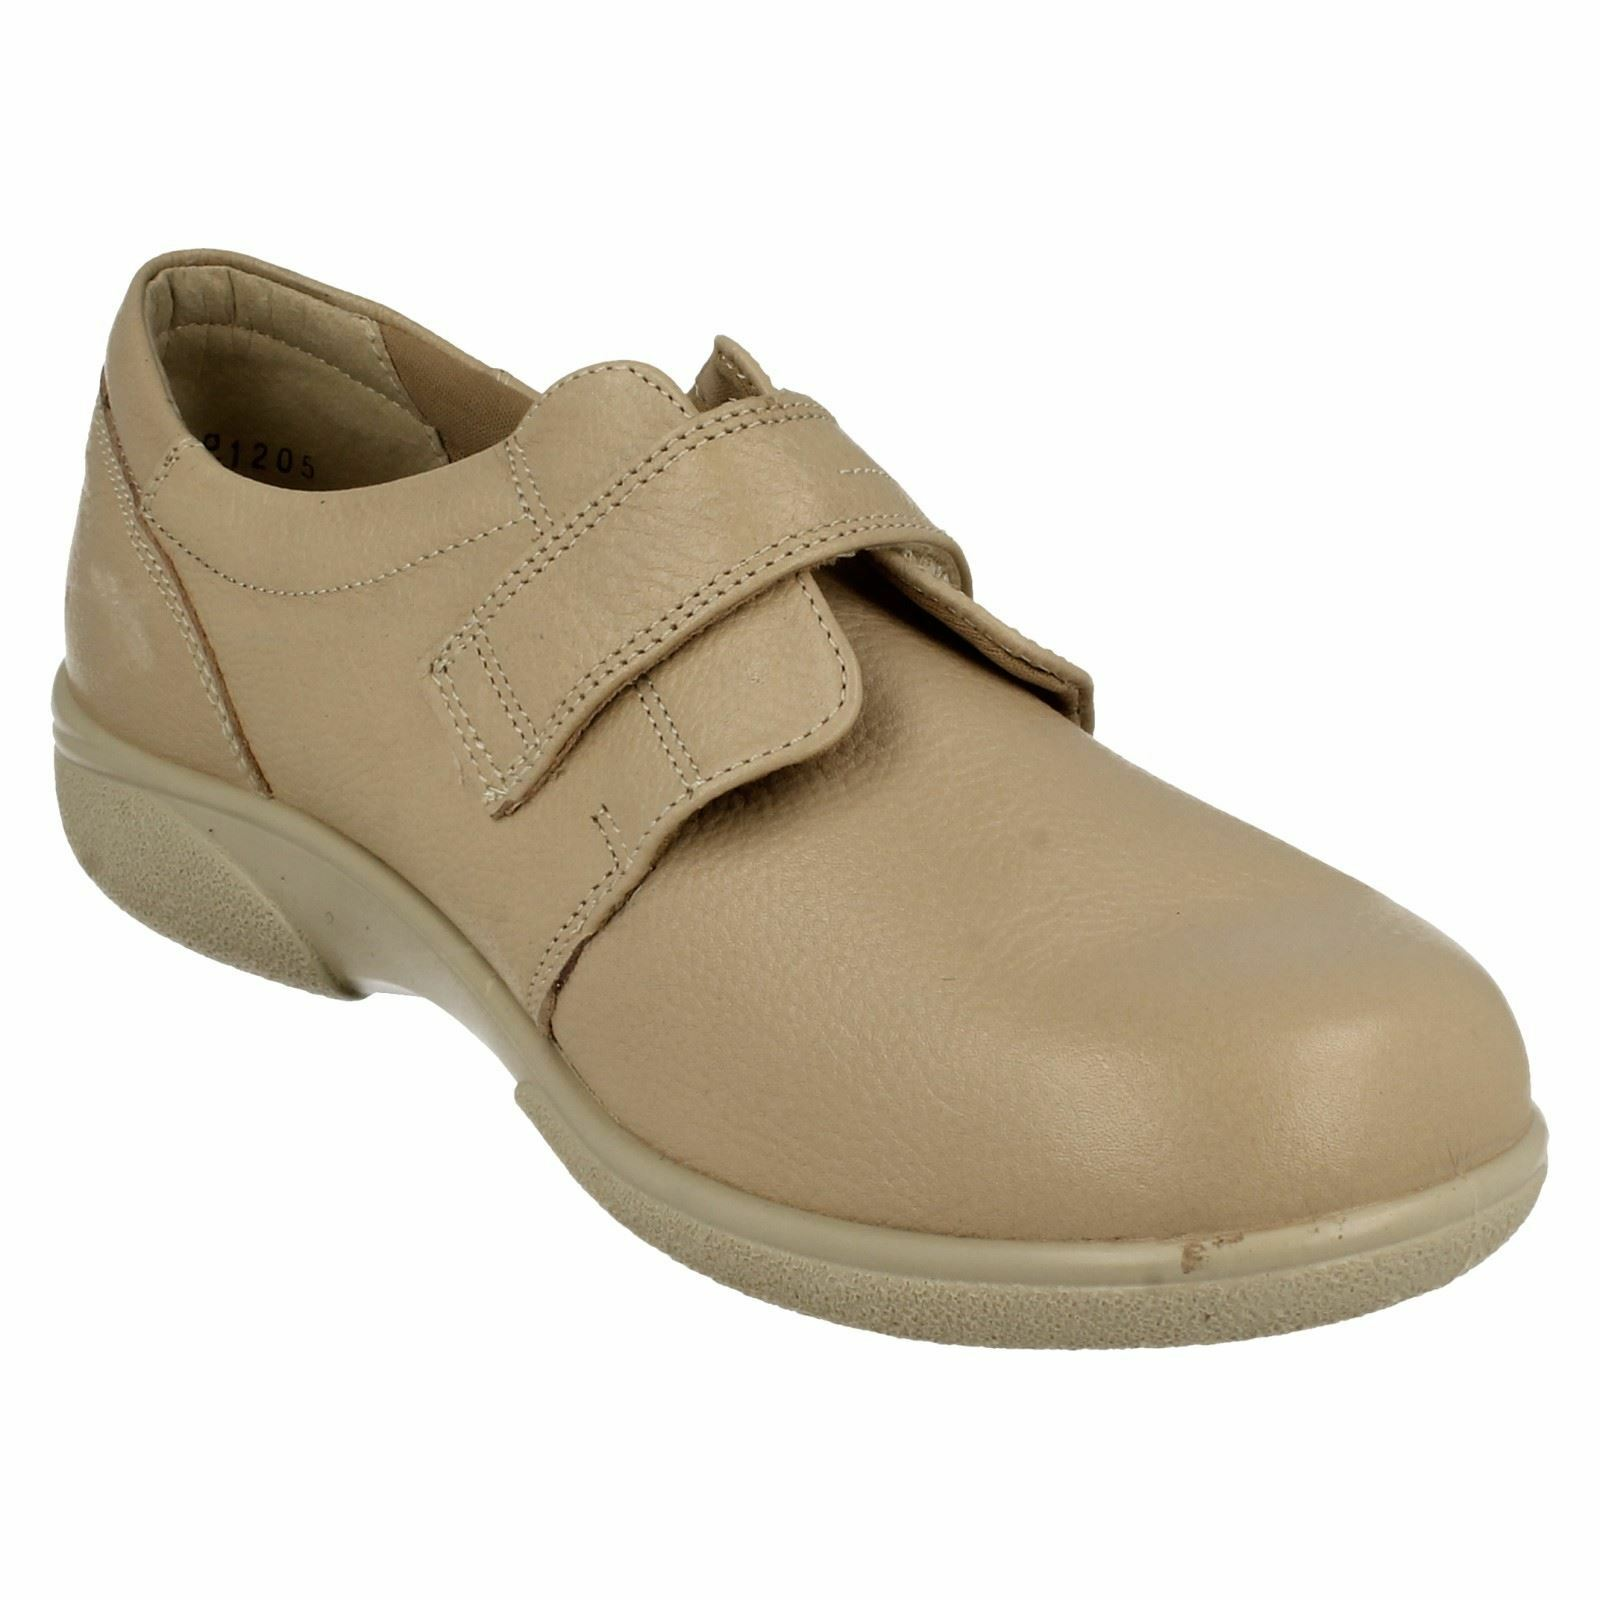 DB DB DB EASY B HEALEY LADIES RIPTAPE STRAP LEATHER CASUAL EVERYDAY SMART FLAT SHOES b656ae